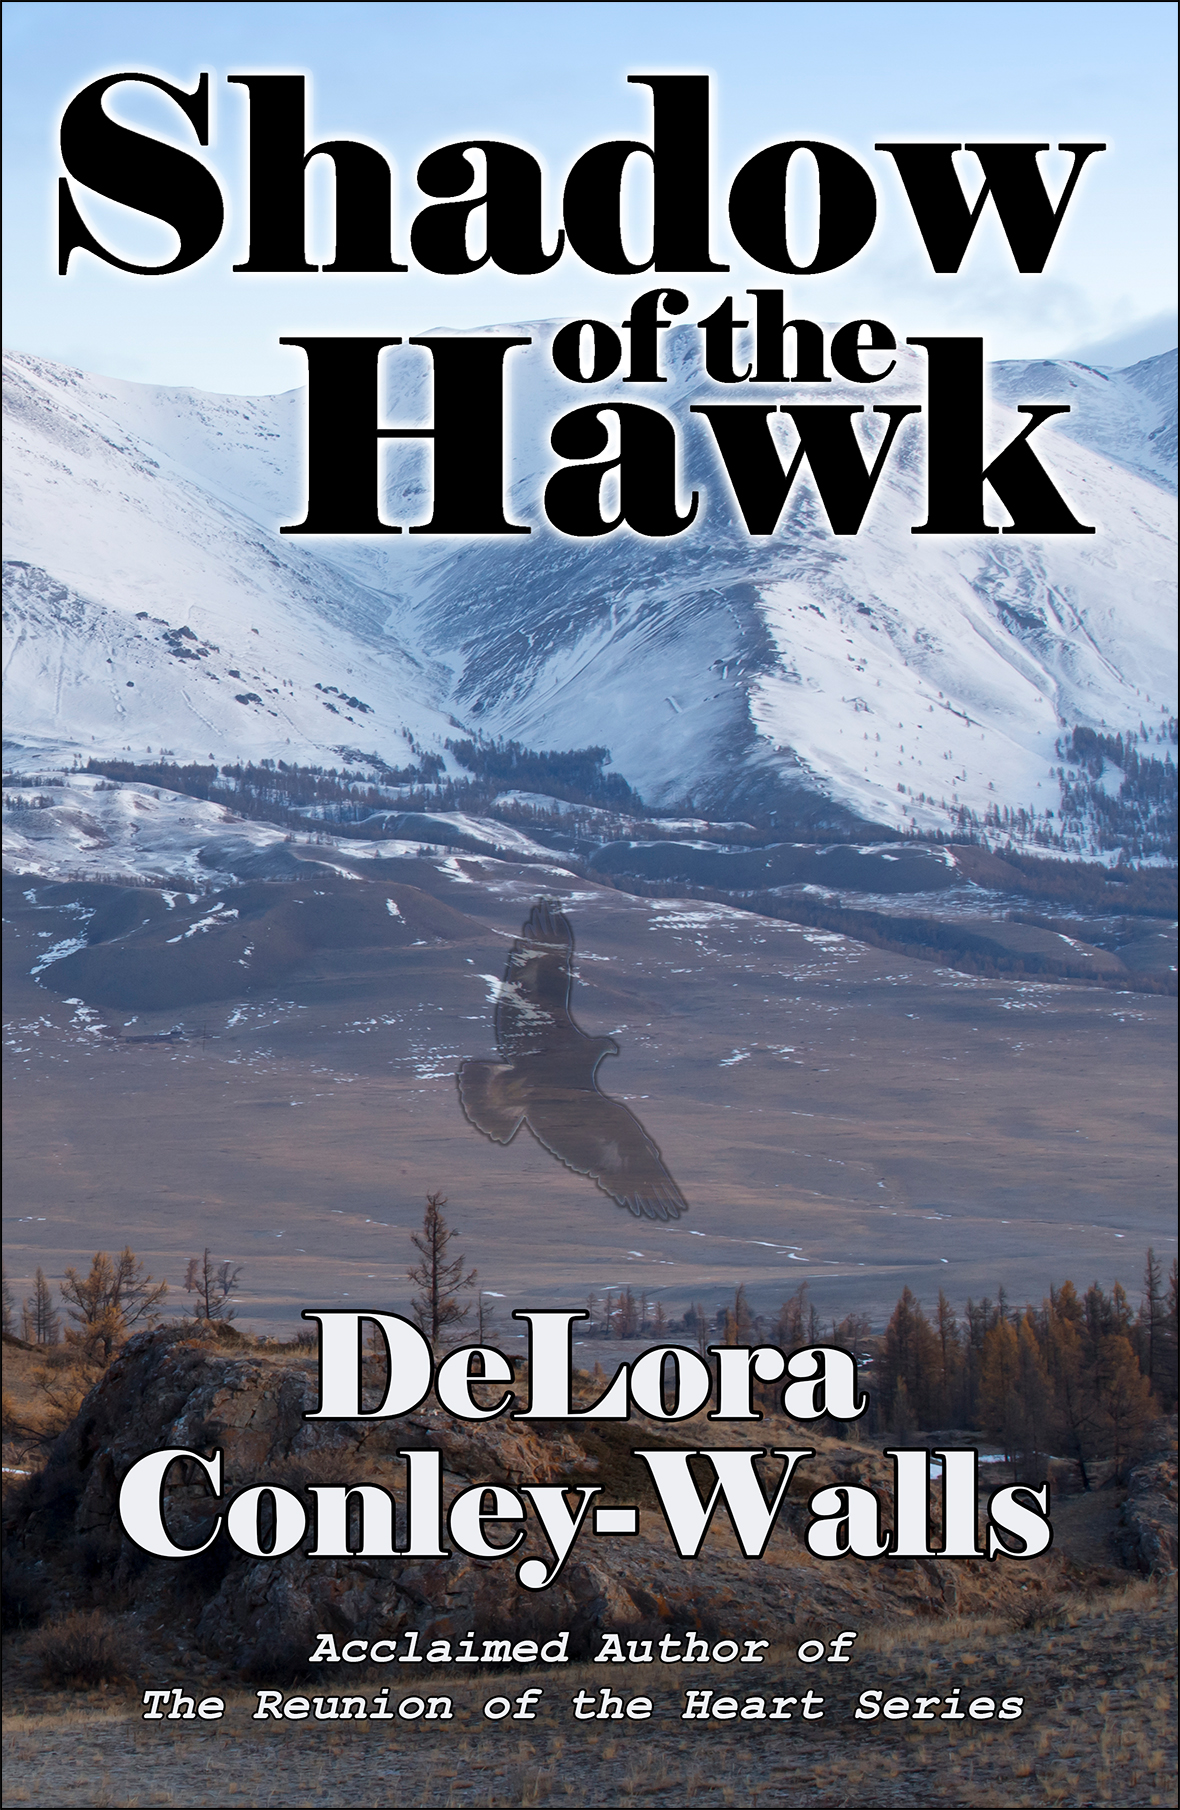 Shadow of the Hawk Cover front v11 reduced for web insertion